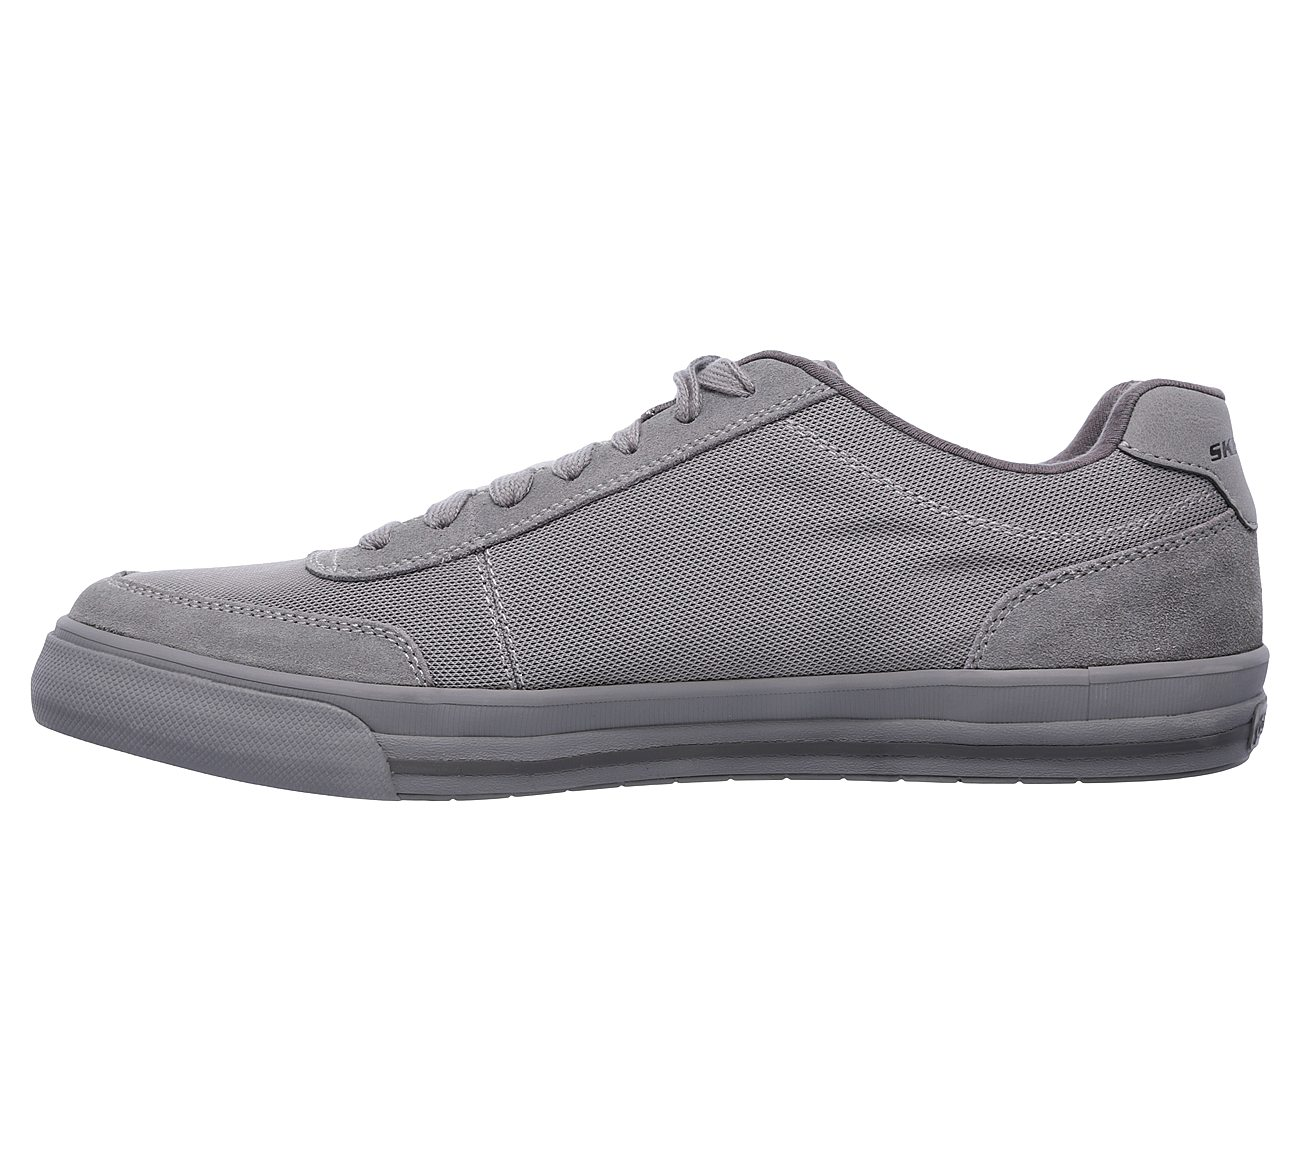 30740f034a46 Buy SKECHERS Relaxed Fit  Diamondback - Revent Relaxed Fit Shoes ...